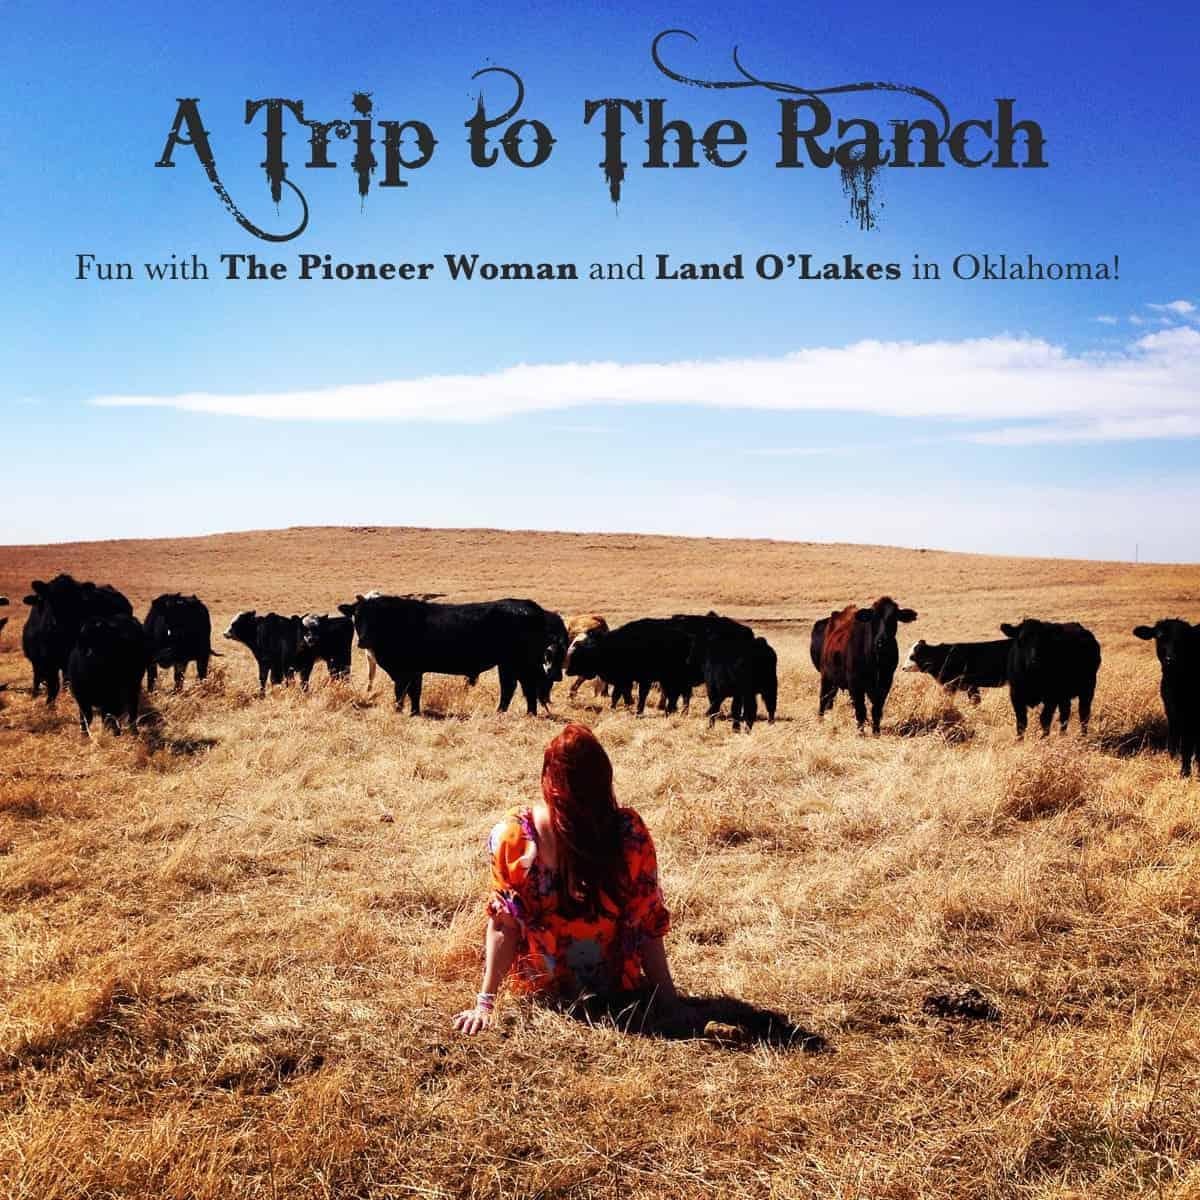 A Trip to The Ranch with The Pioneer Woman and Land O'Lakes - afarmgirlsdabbles.com